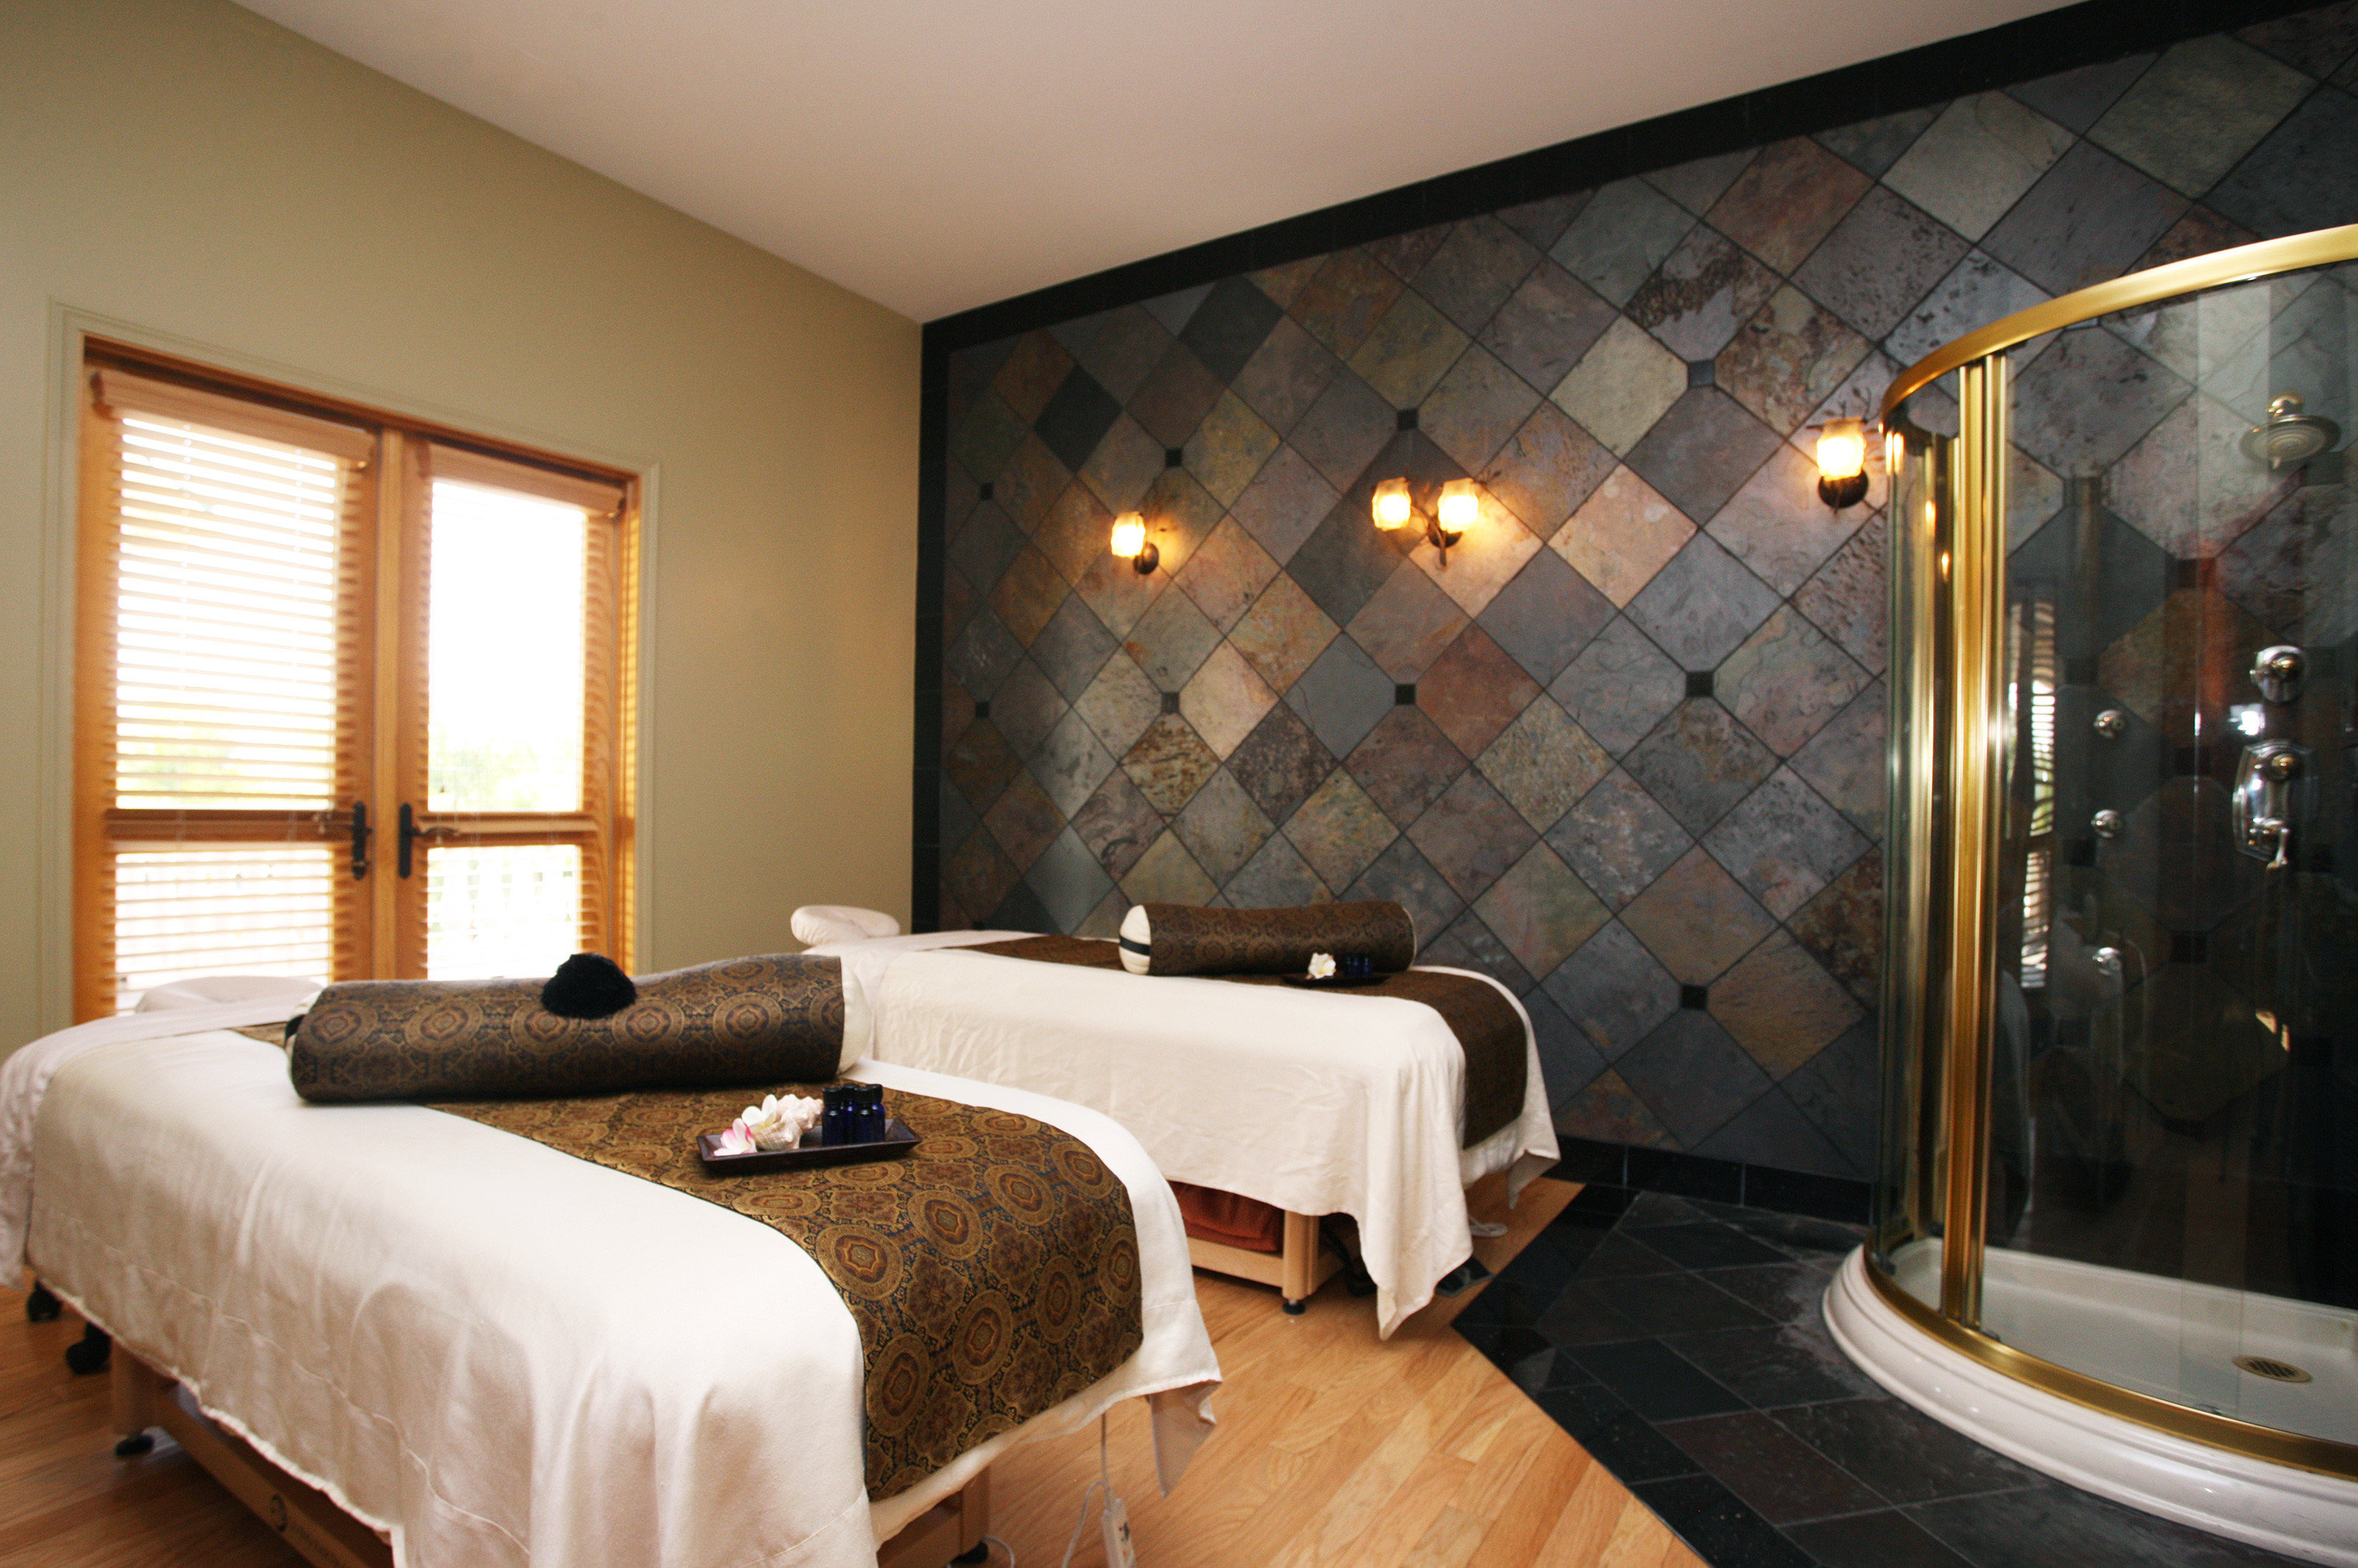 Boutique Country Romantic Spa Wellness Winery property Bedroom Suite cottage